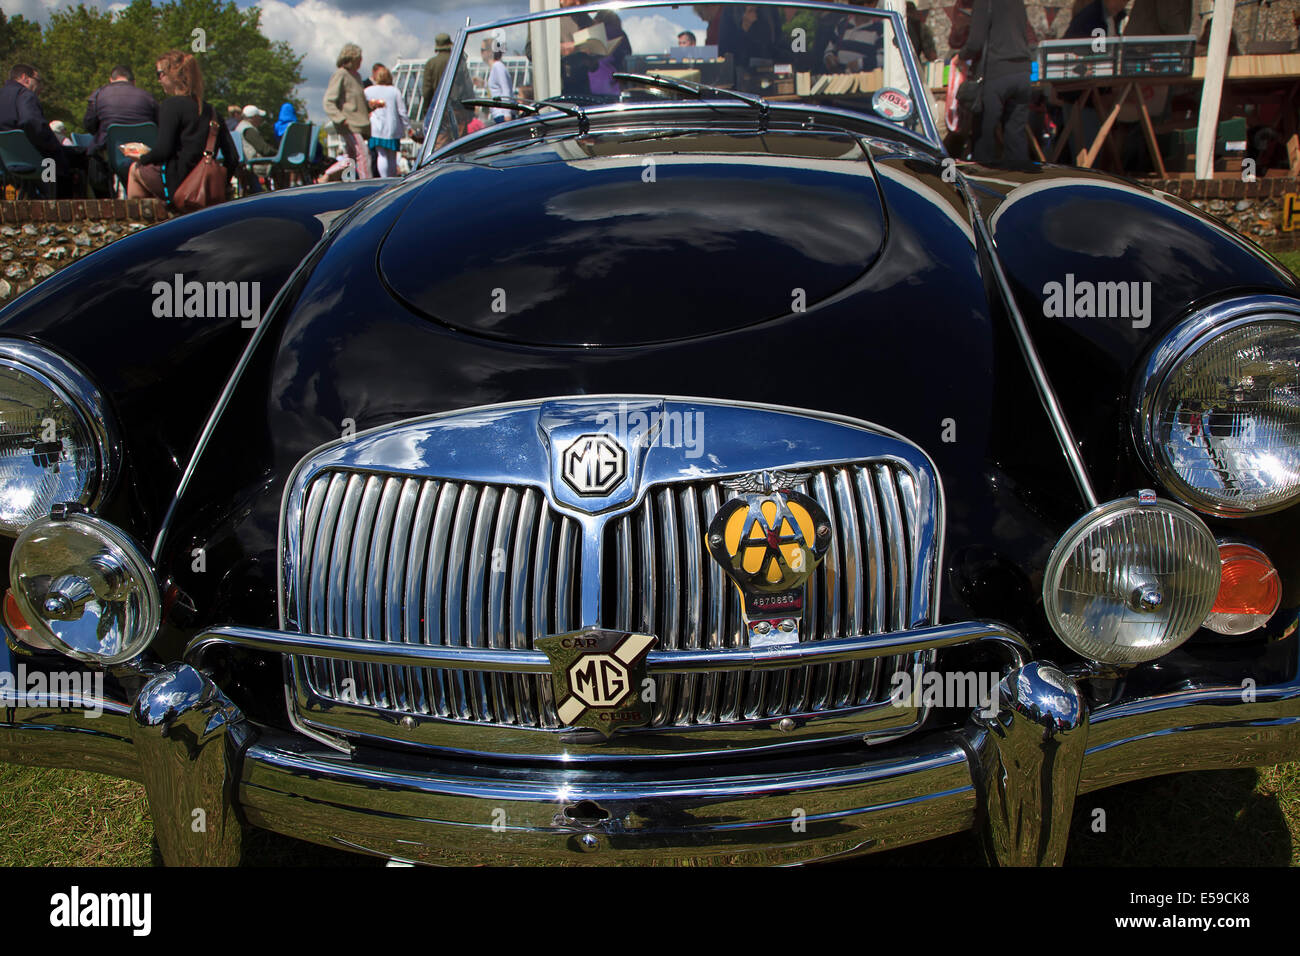 Transport, Cars, Old, Classic car show, Radiator grill of MG showing ...